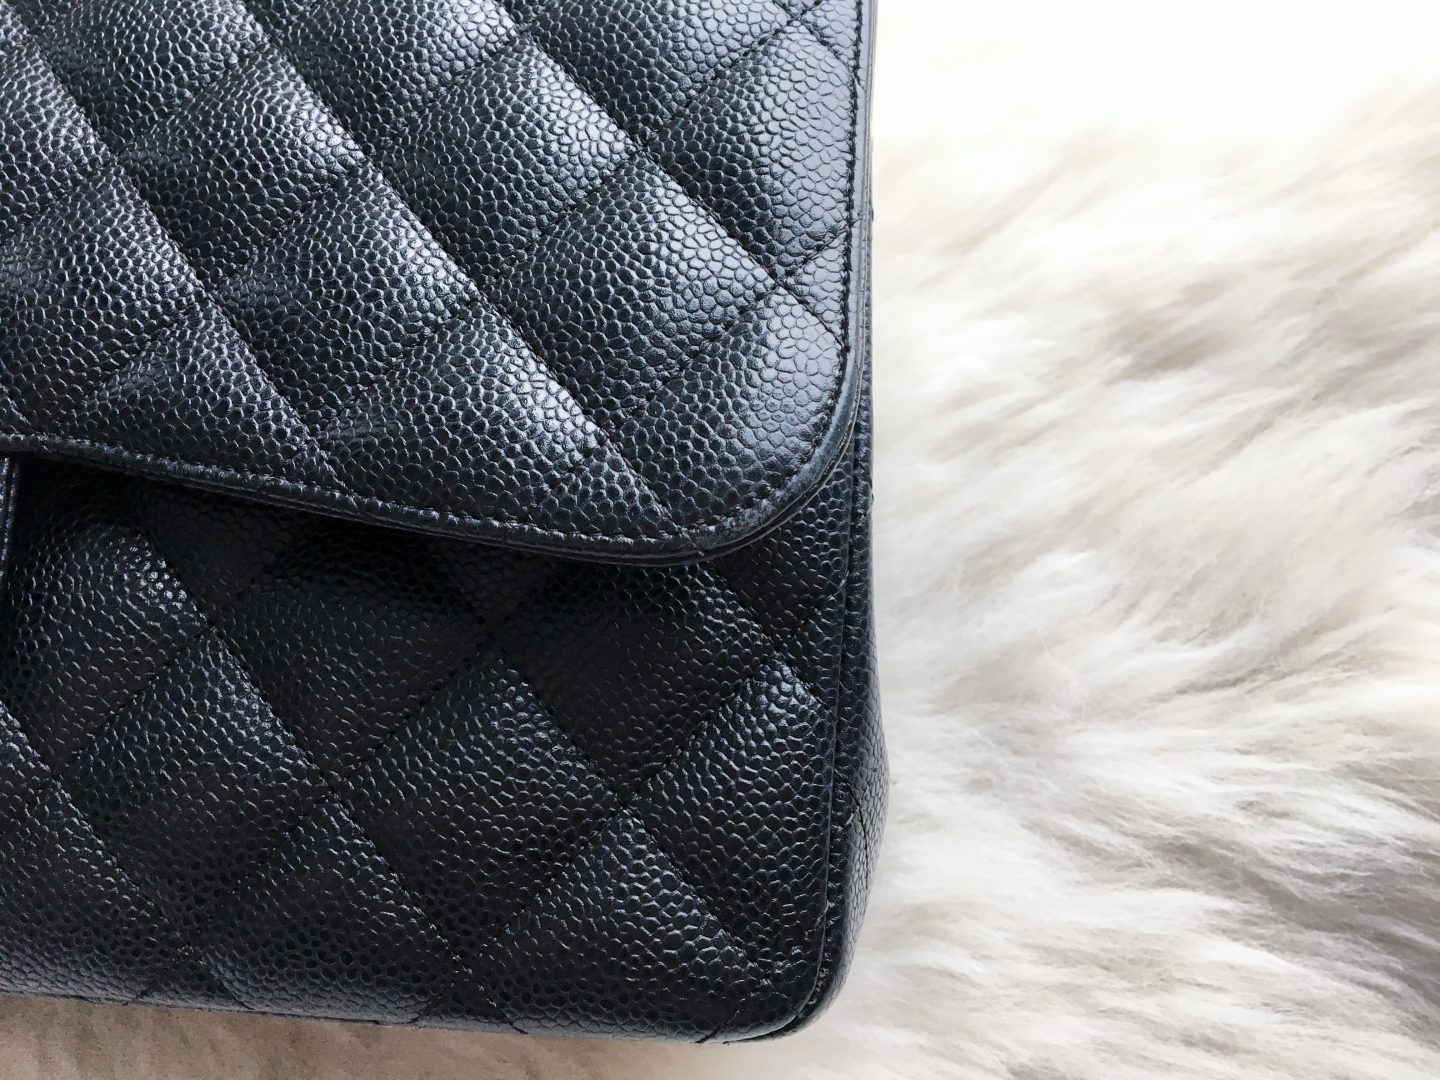 0dc0bcd9c893 I have heard complaints about the dullness of leather in cases but this  will have to do with either the type of caviar leather (because Chanel  likes to keep ...